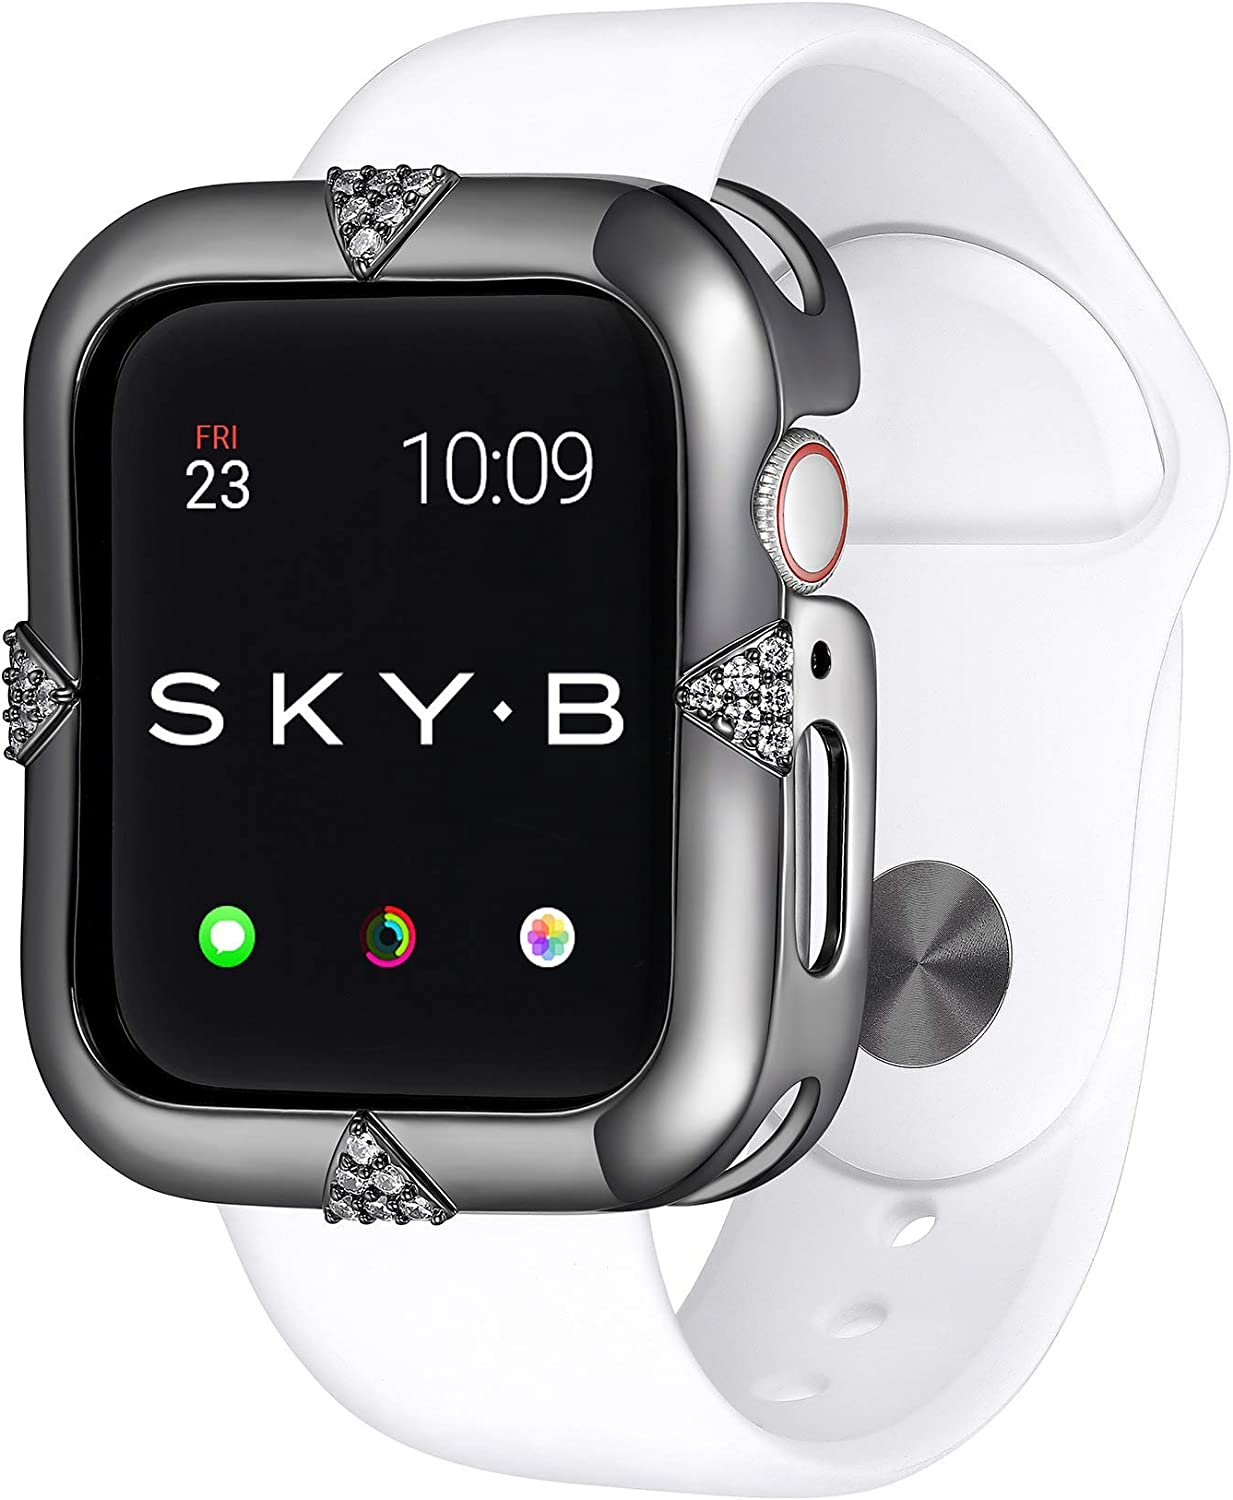 SKYB Pave Points Gunmetal Protective Jewelry Case for Apple Watch Series 1, 2, 3, 4, 5 Devices - 42mm